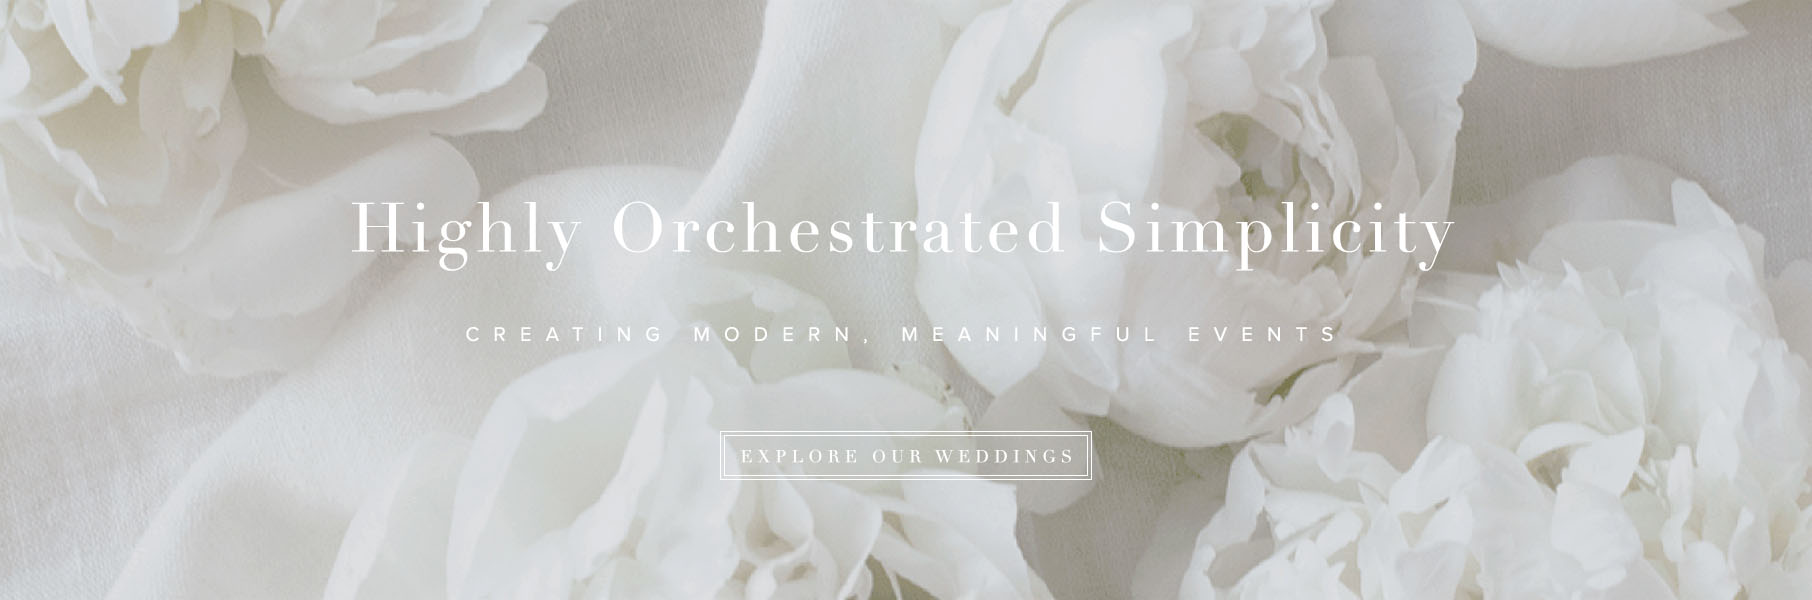 Modern, meaningful wedding planning and design - Cassandra & Co.